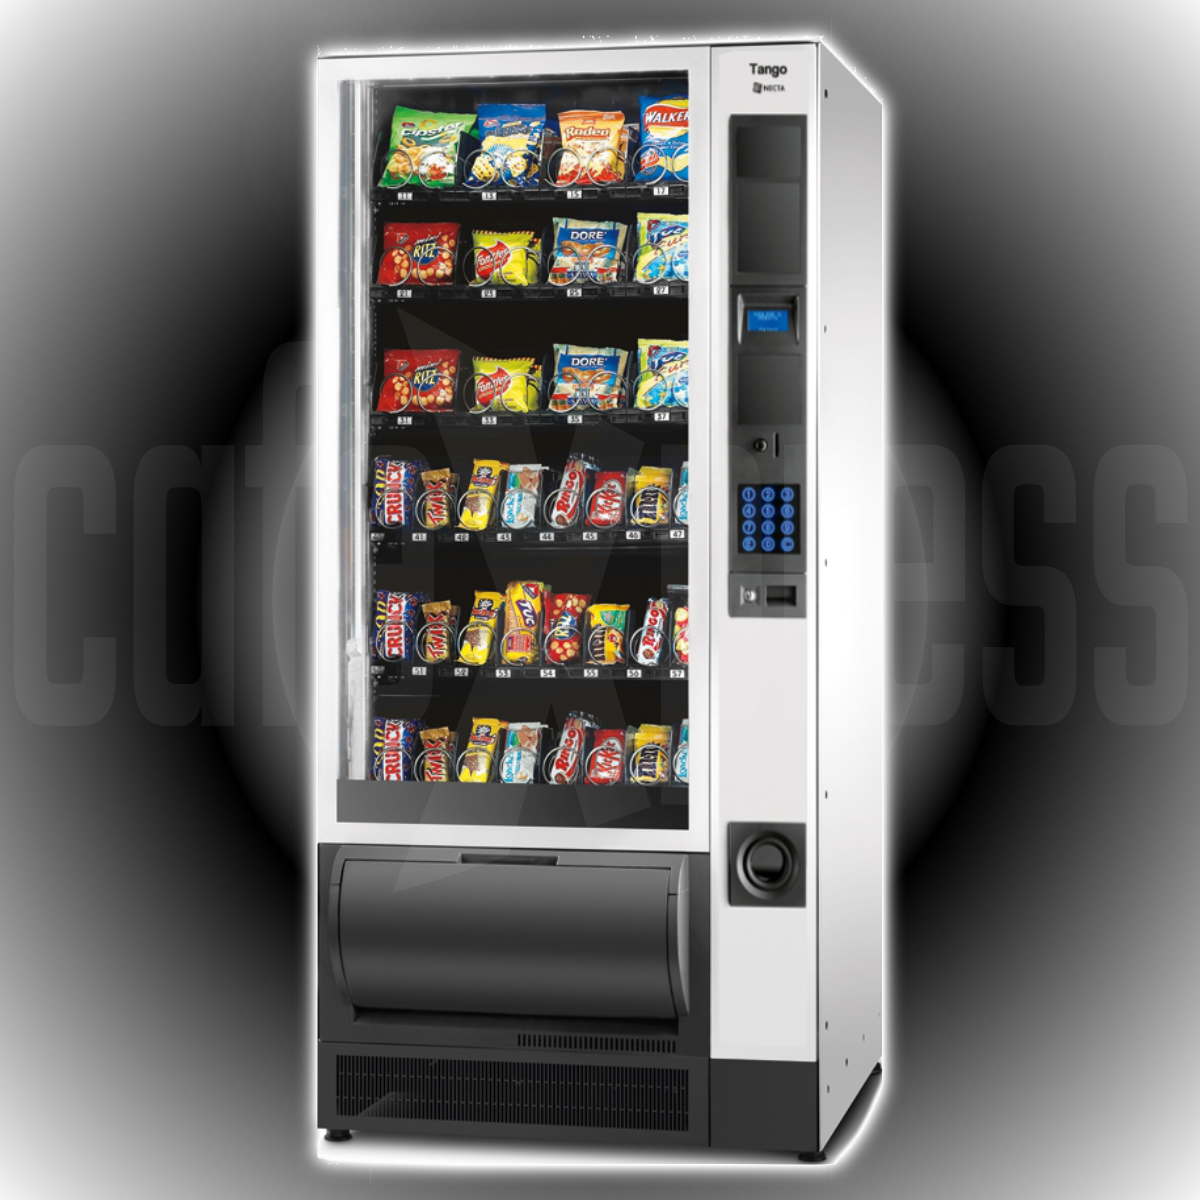 Necta TANGO 6-36 Snack Food Vending Machine